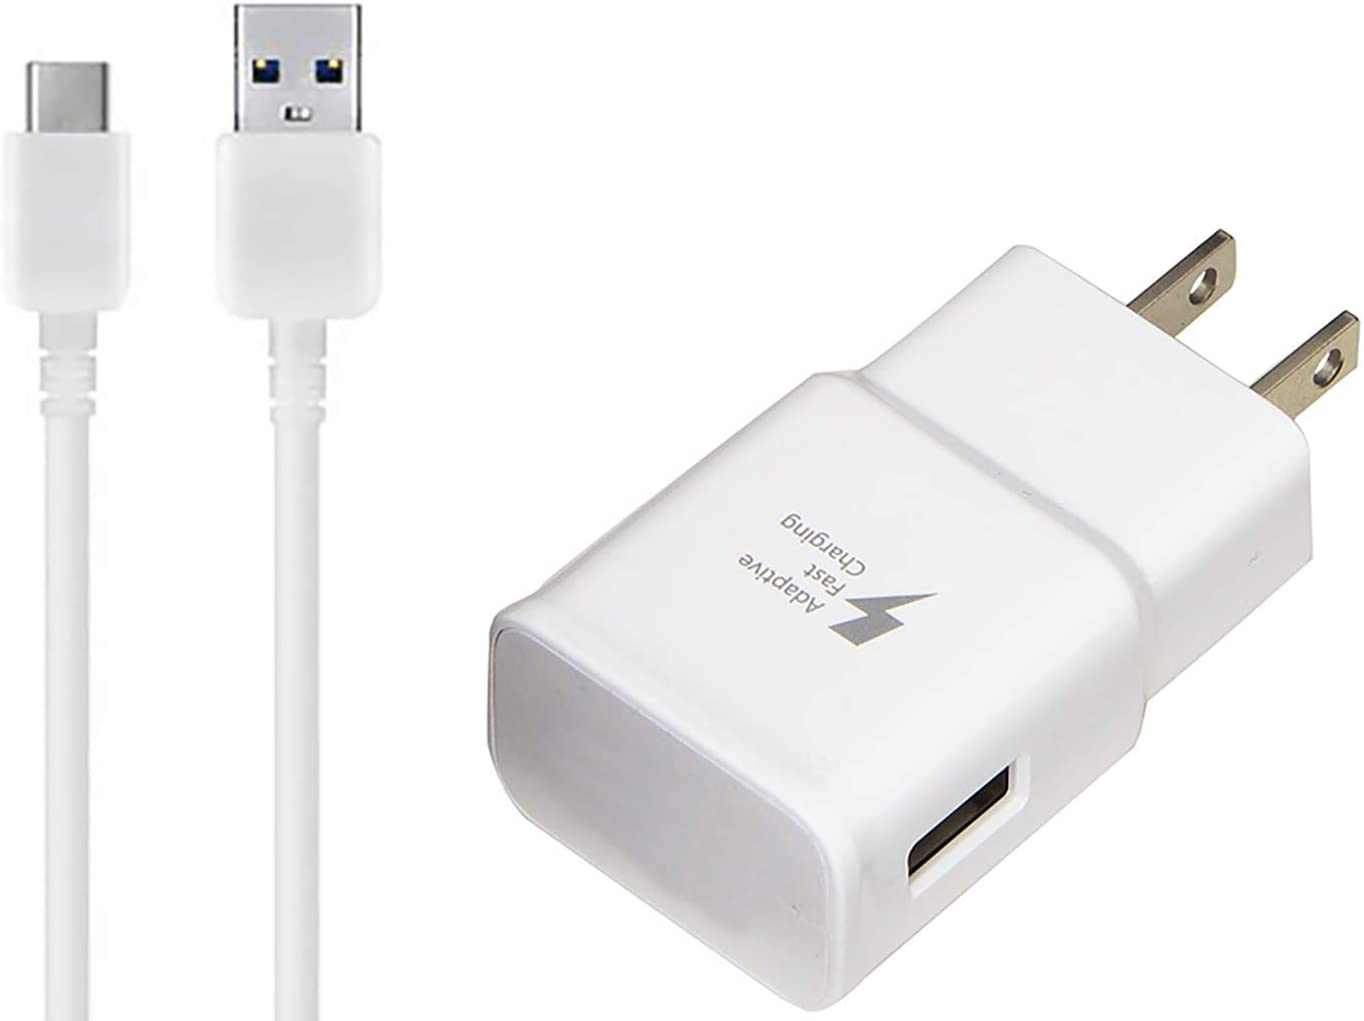 OEM Adaptive Fast Charger Works for Google G020I 15W with Certified USB Type-C Data and Charging Cable. White 3.3FT 1M Cable